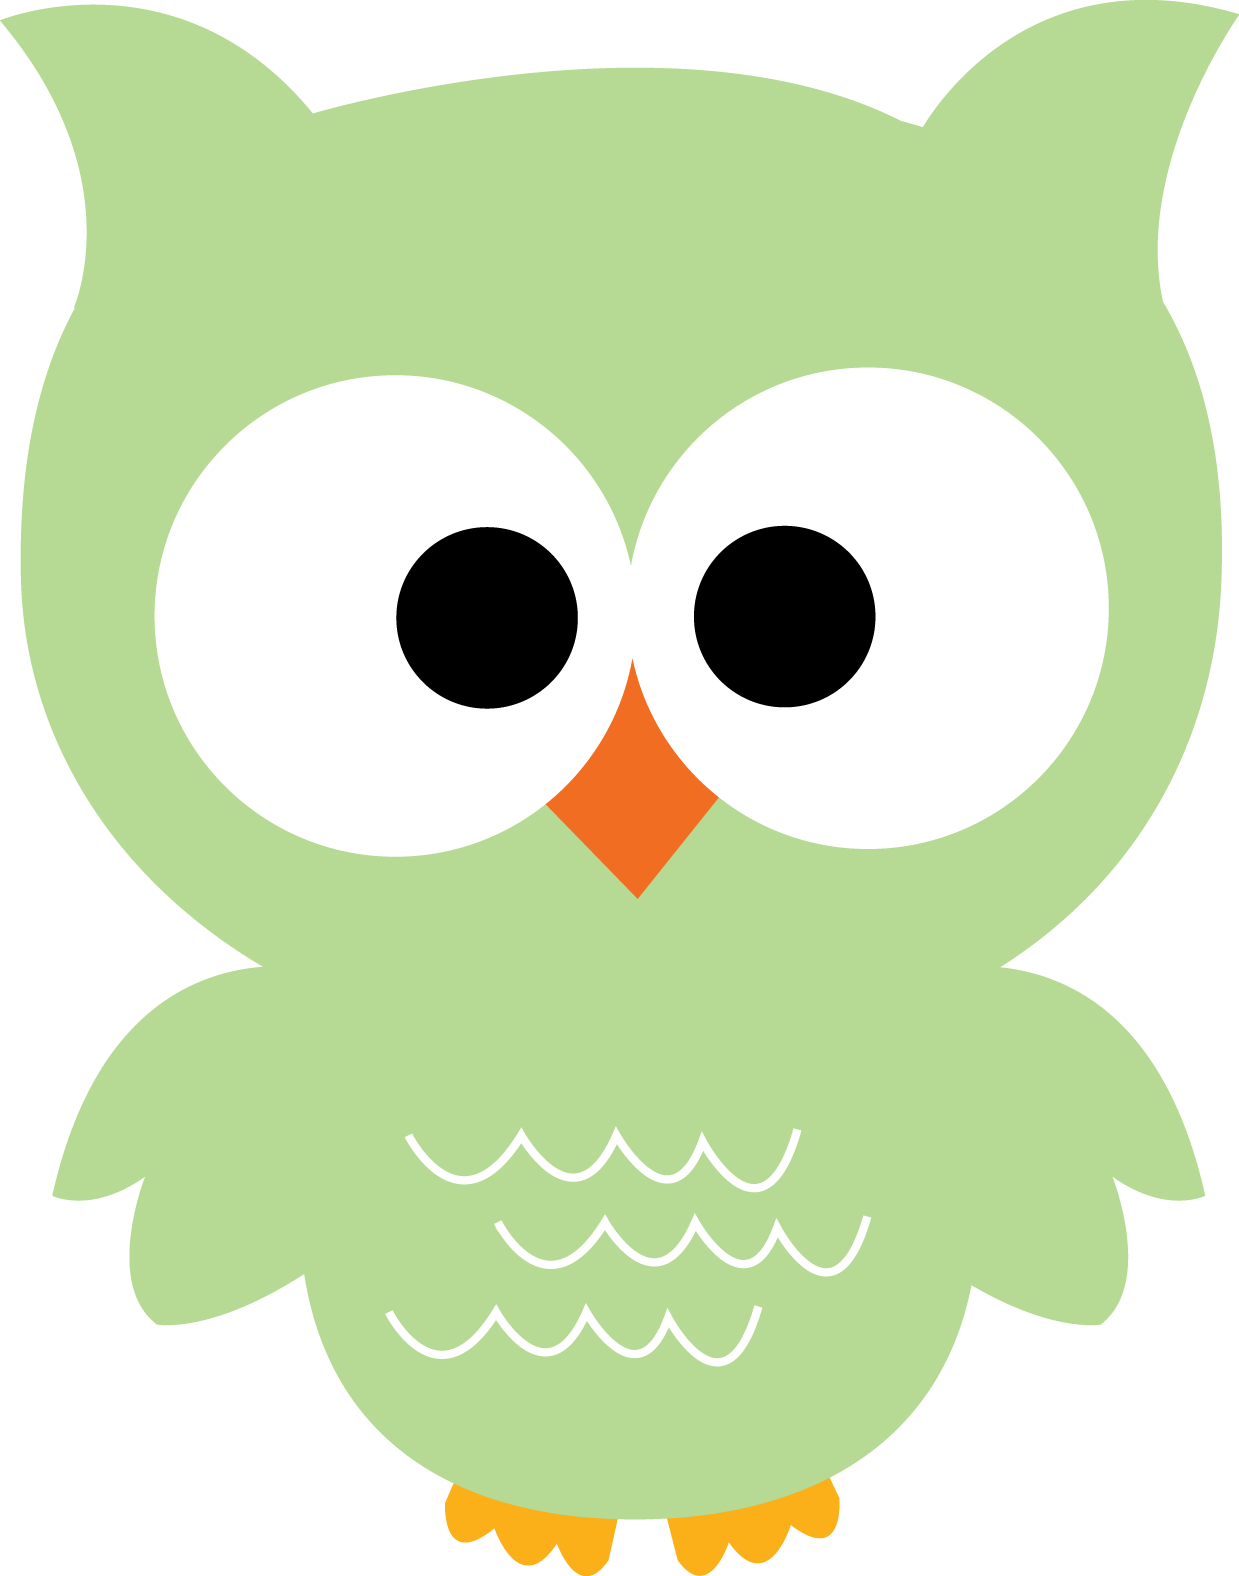 graphic about Printable Owl Templates named 20 Lovable Owl Printables! Ohh These types of are consequently lovely!!! Hence plenty of